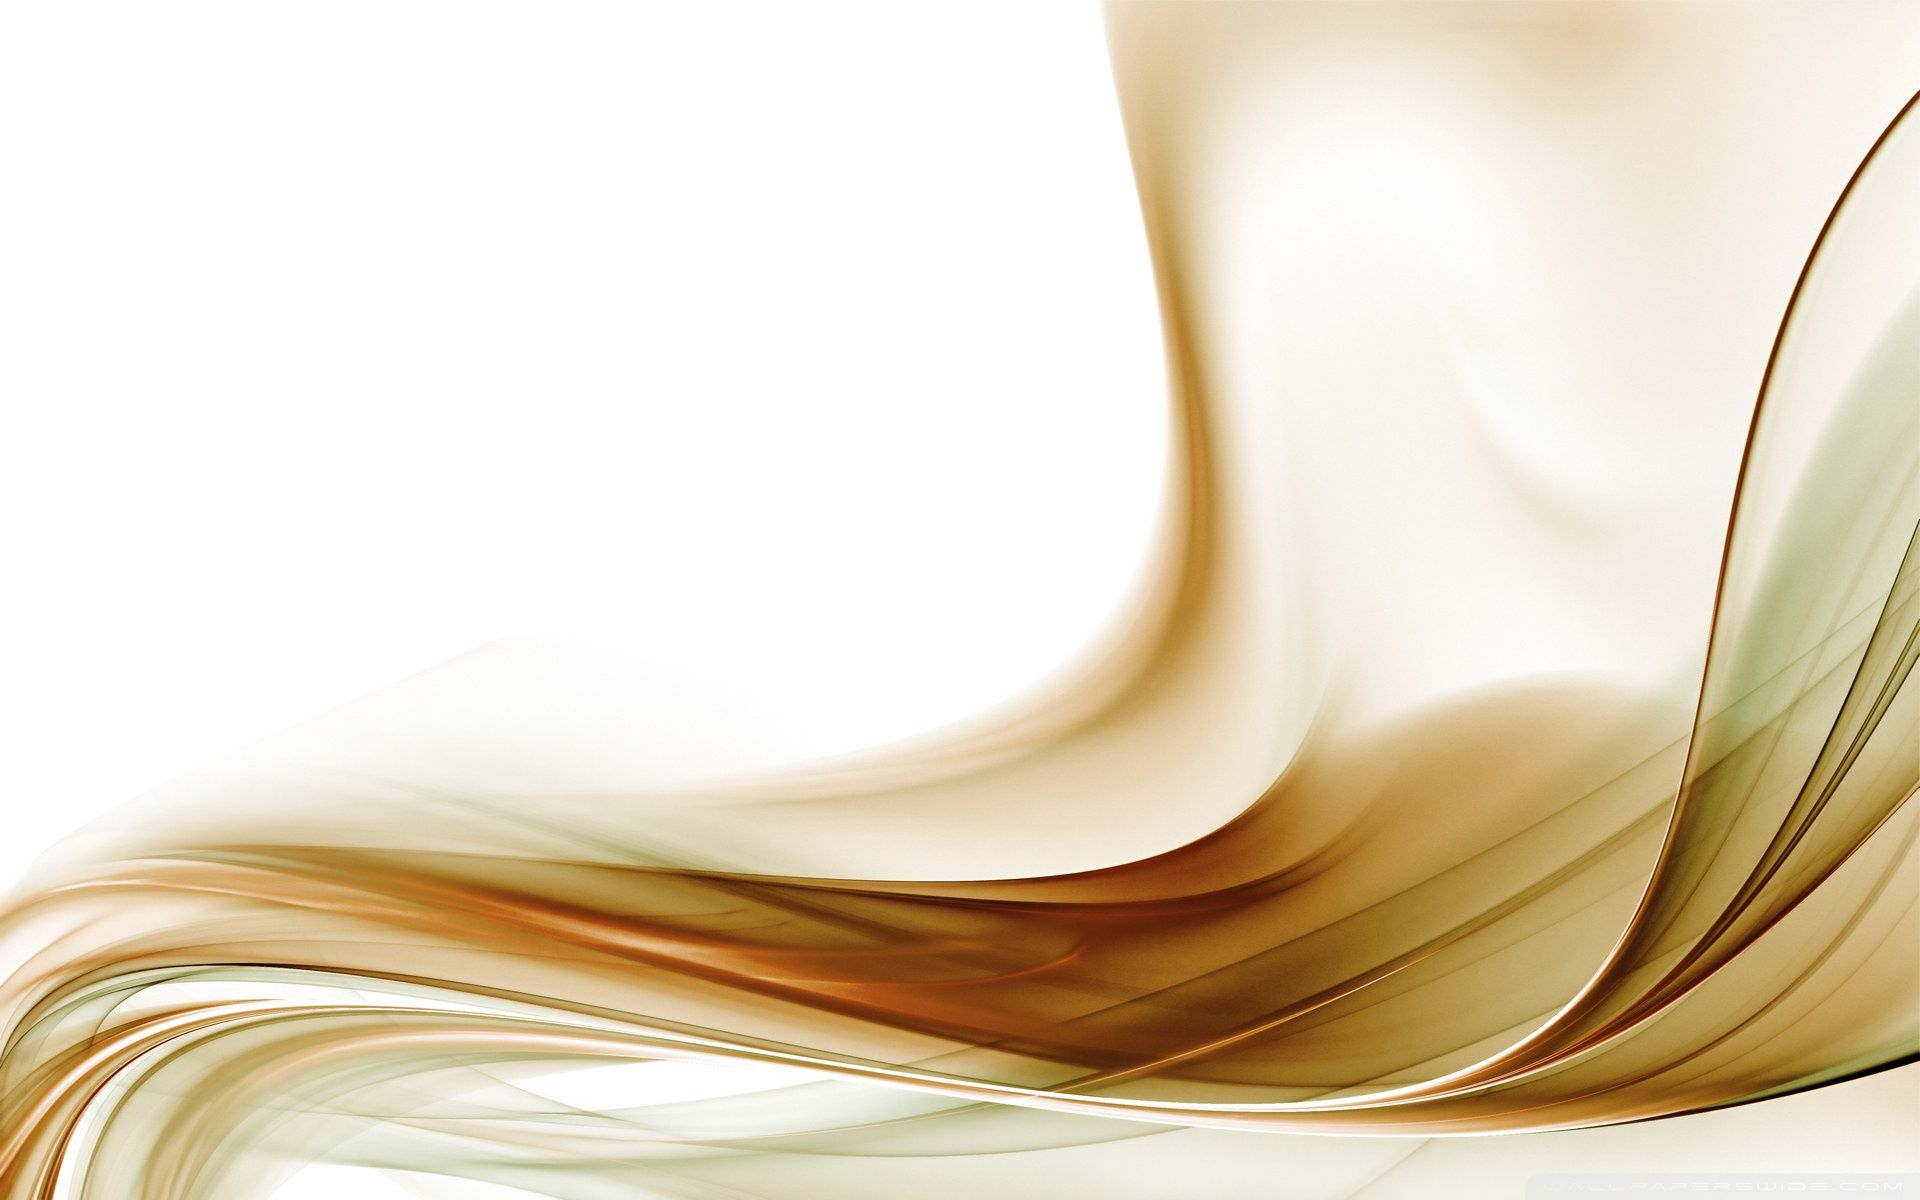 Black and Gold Abstract Wallpapers - Top Free Black and ...